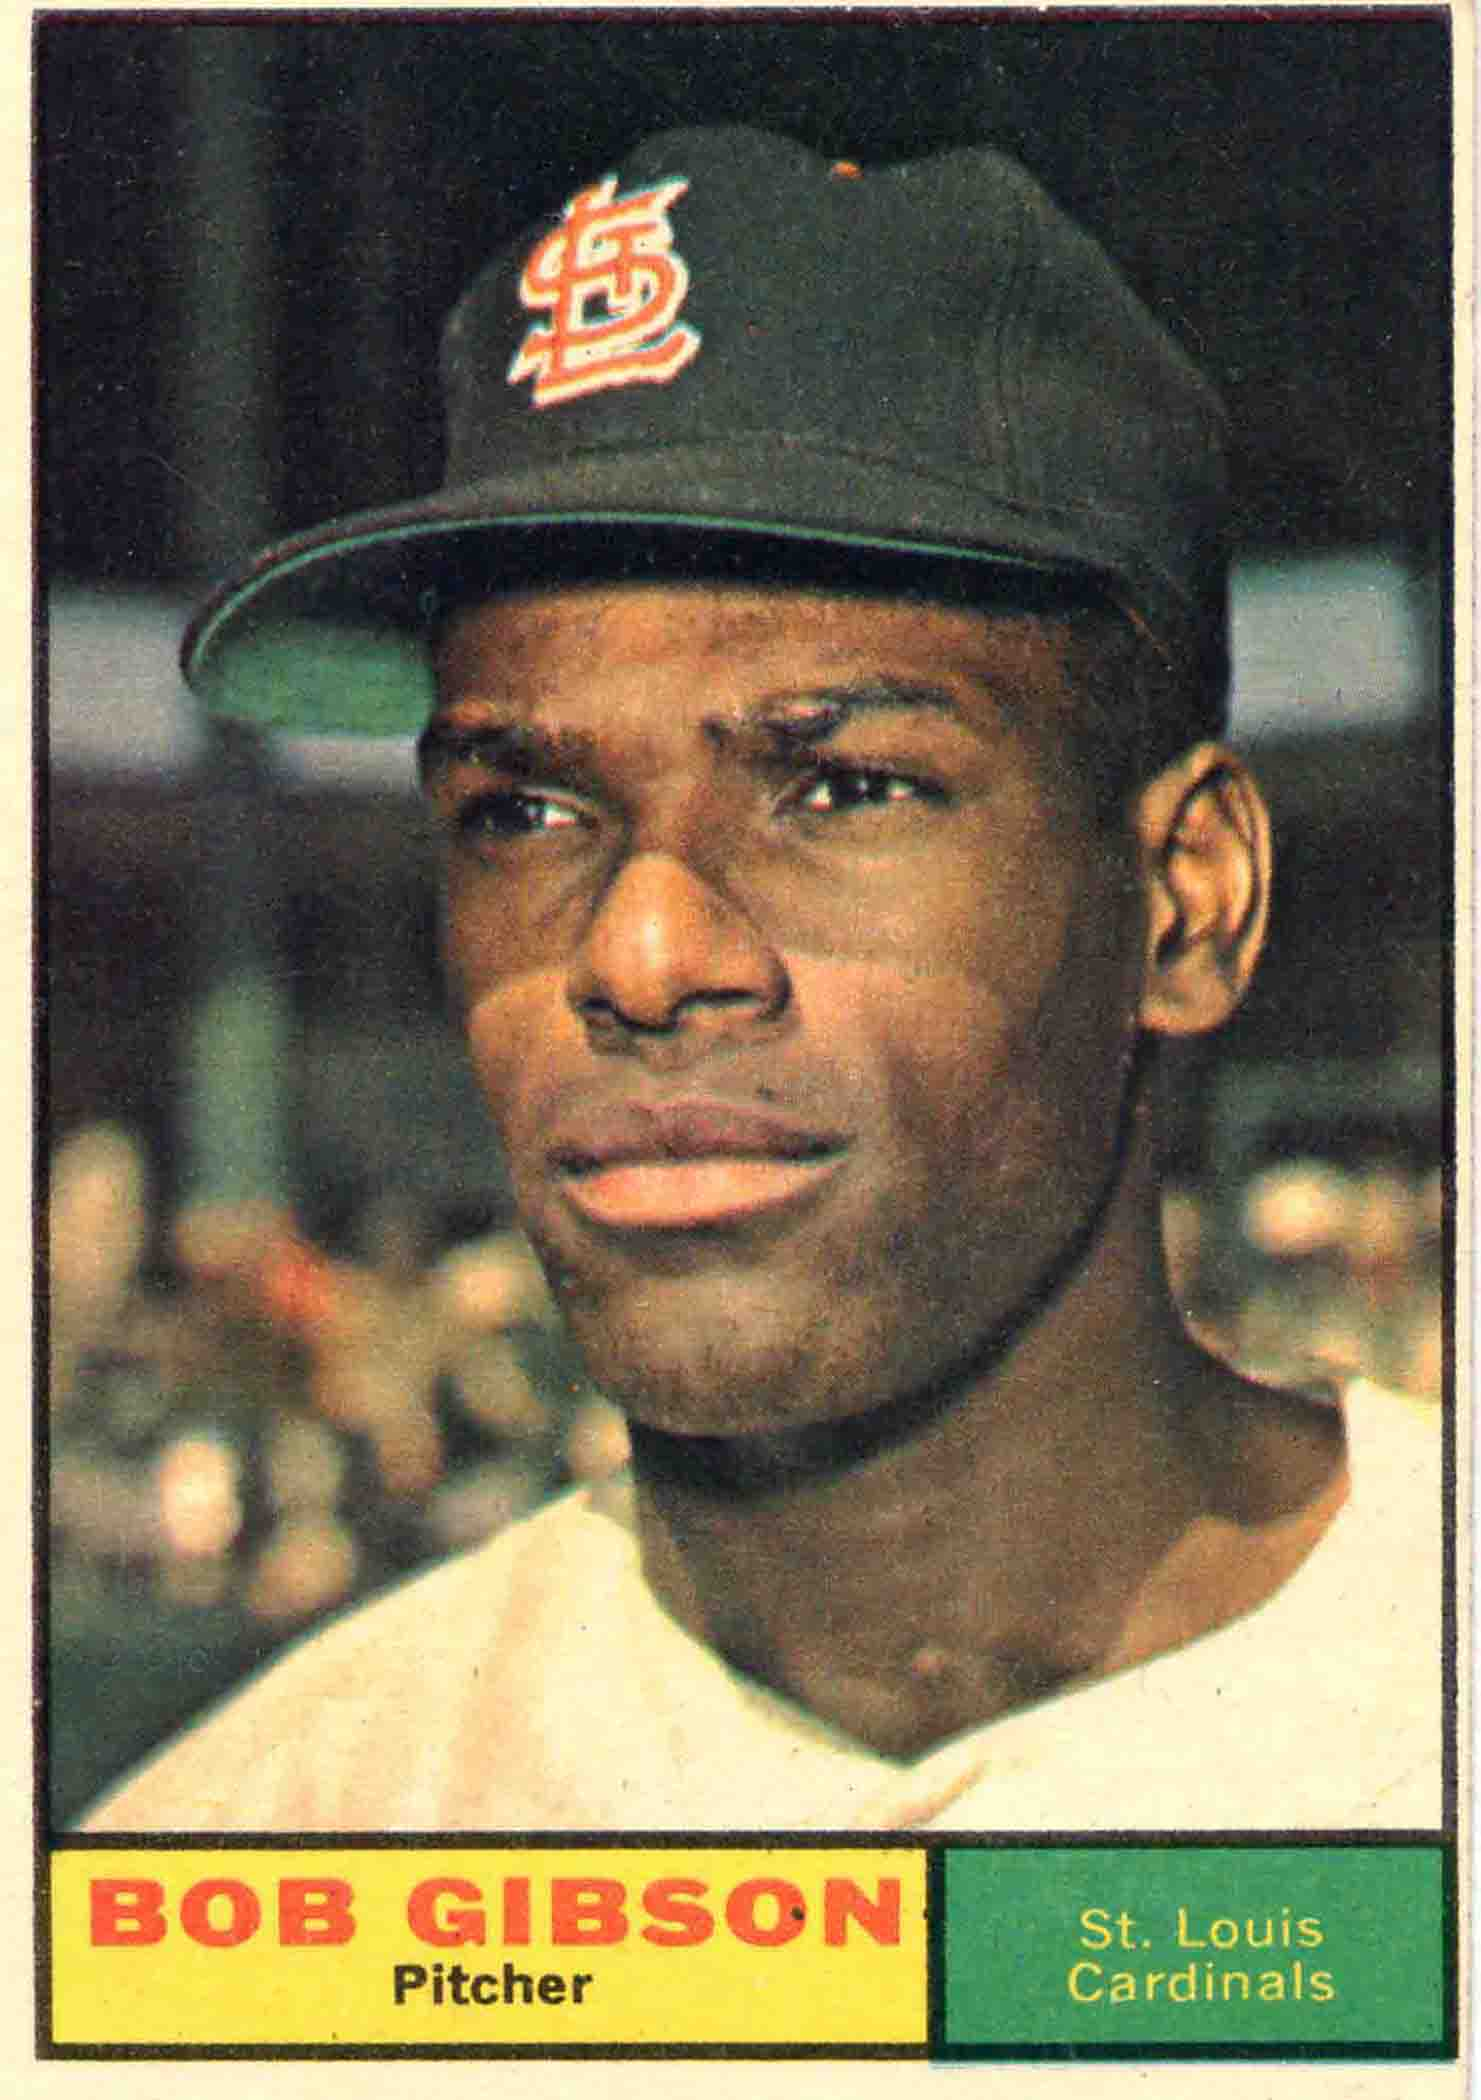 1970 Cardinals Topps Cards Baseball